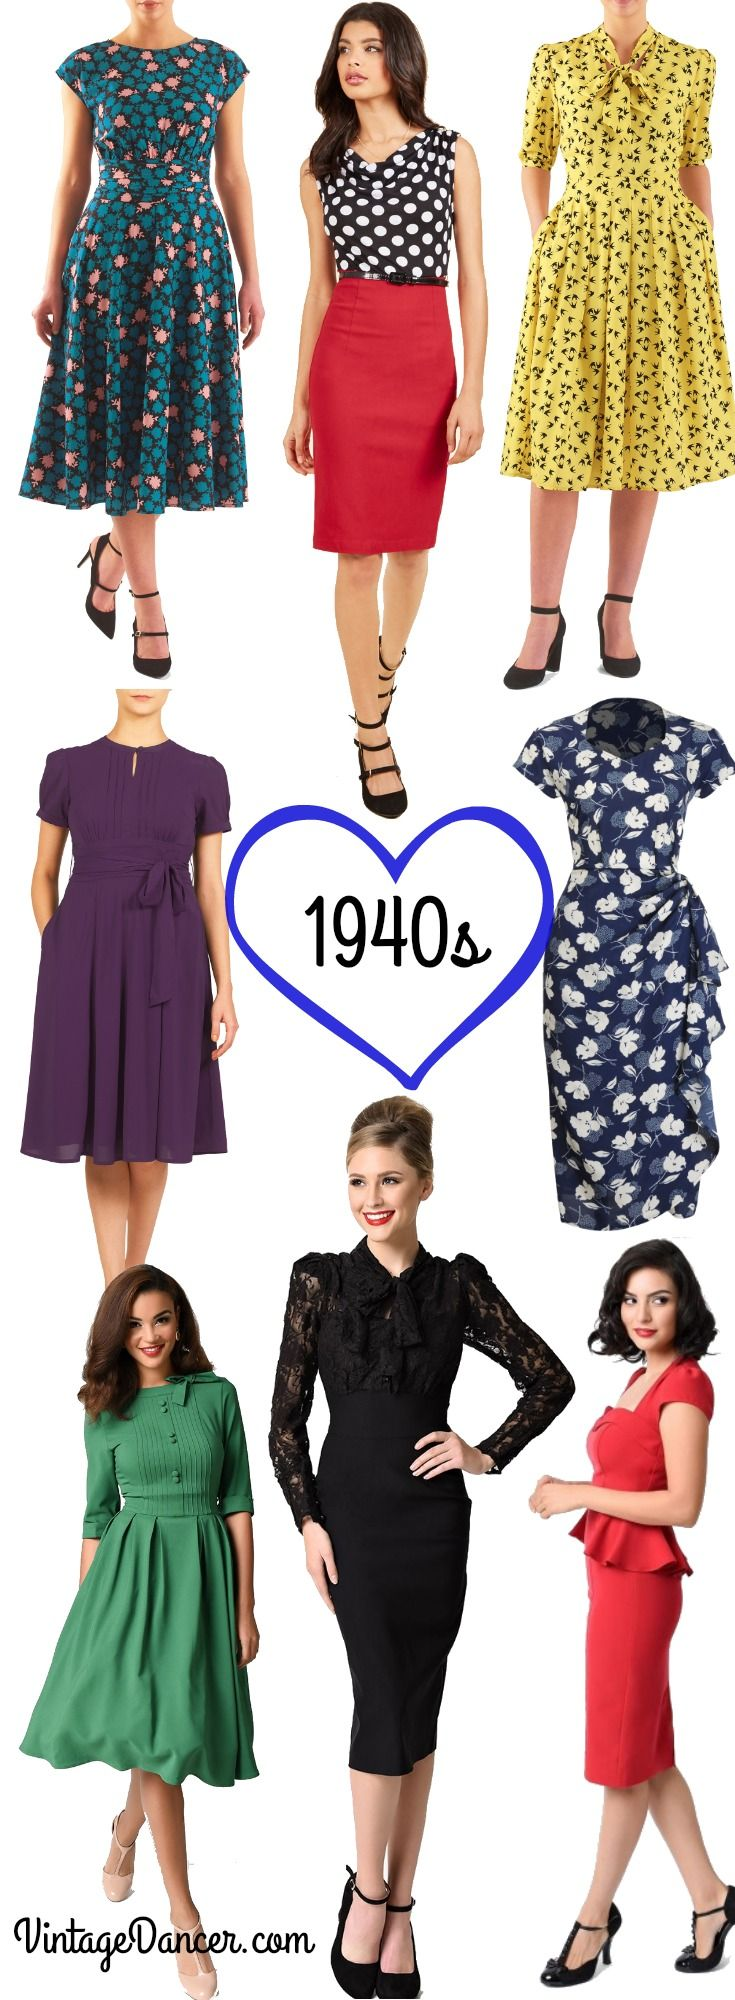 18 best vintage outfit images on Pinterest | Dress skirt, Party ...